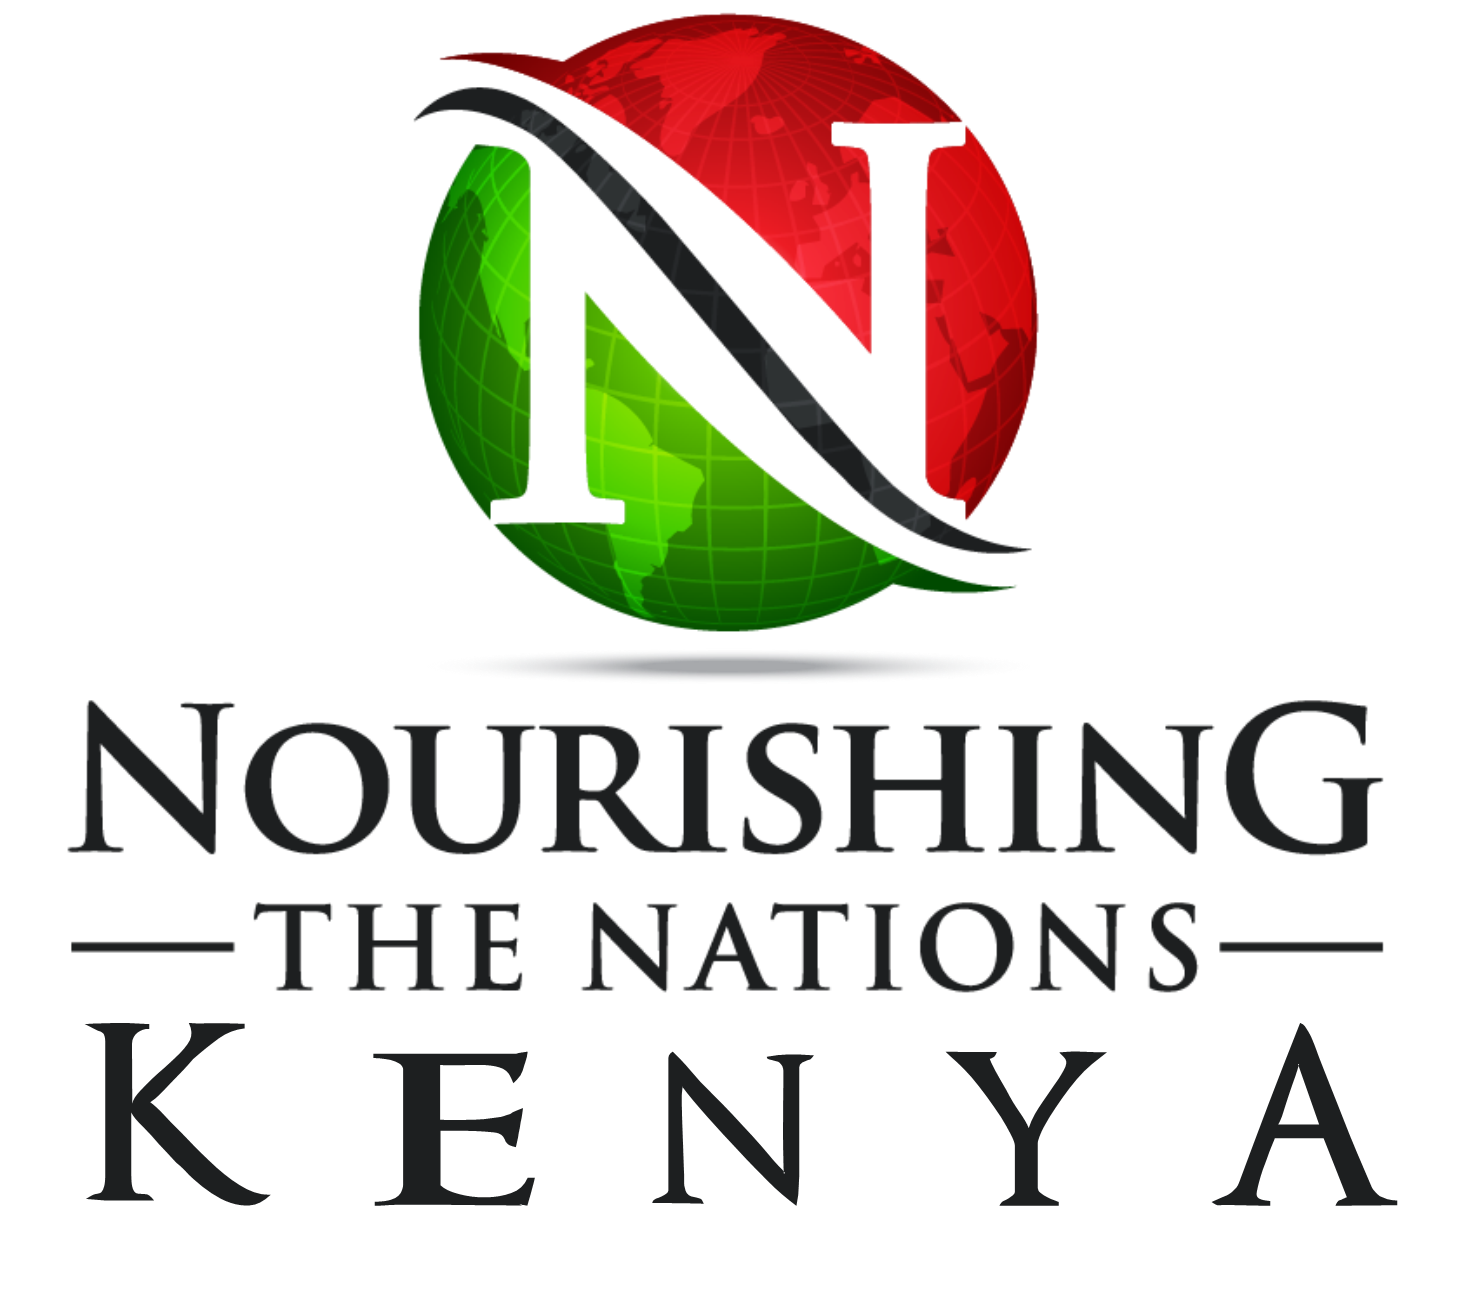 Nourishing the Nations Kenya